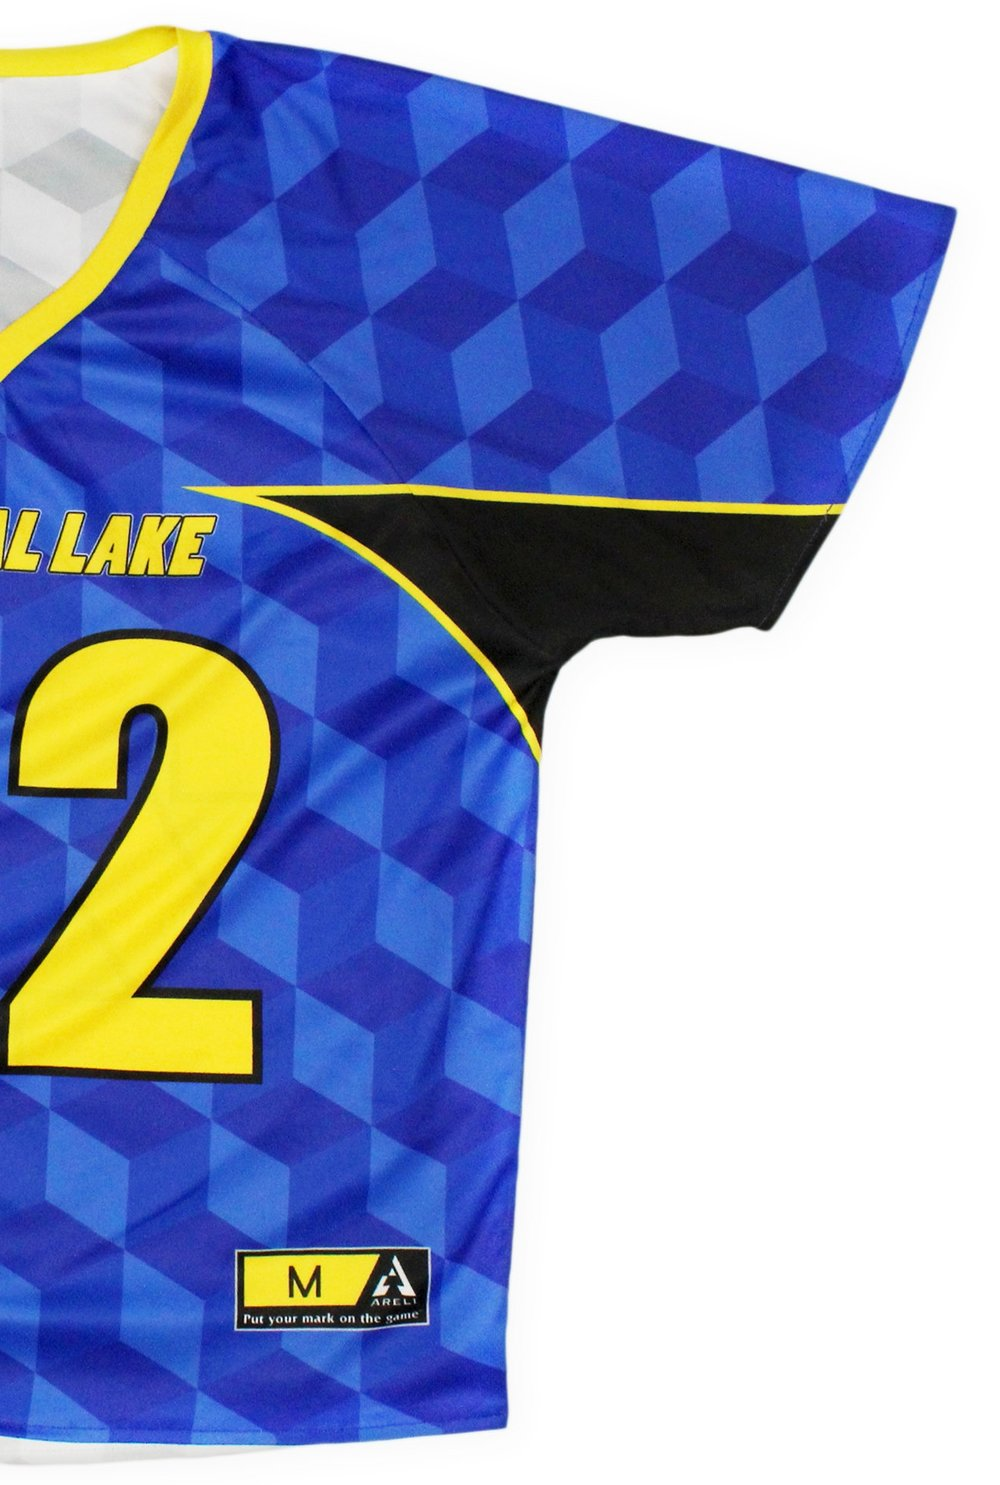 Lacrosse - Custom designed fully sublimated lacrosse essentials